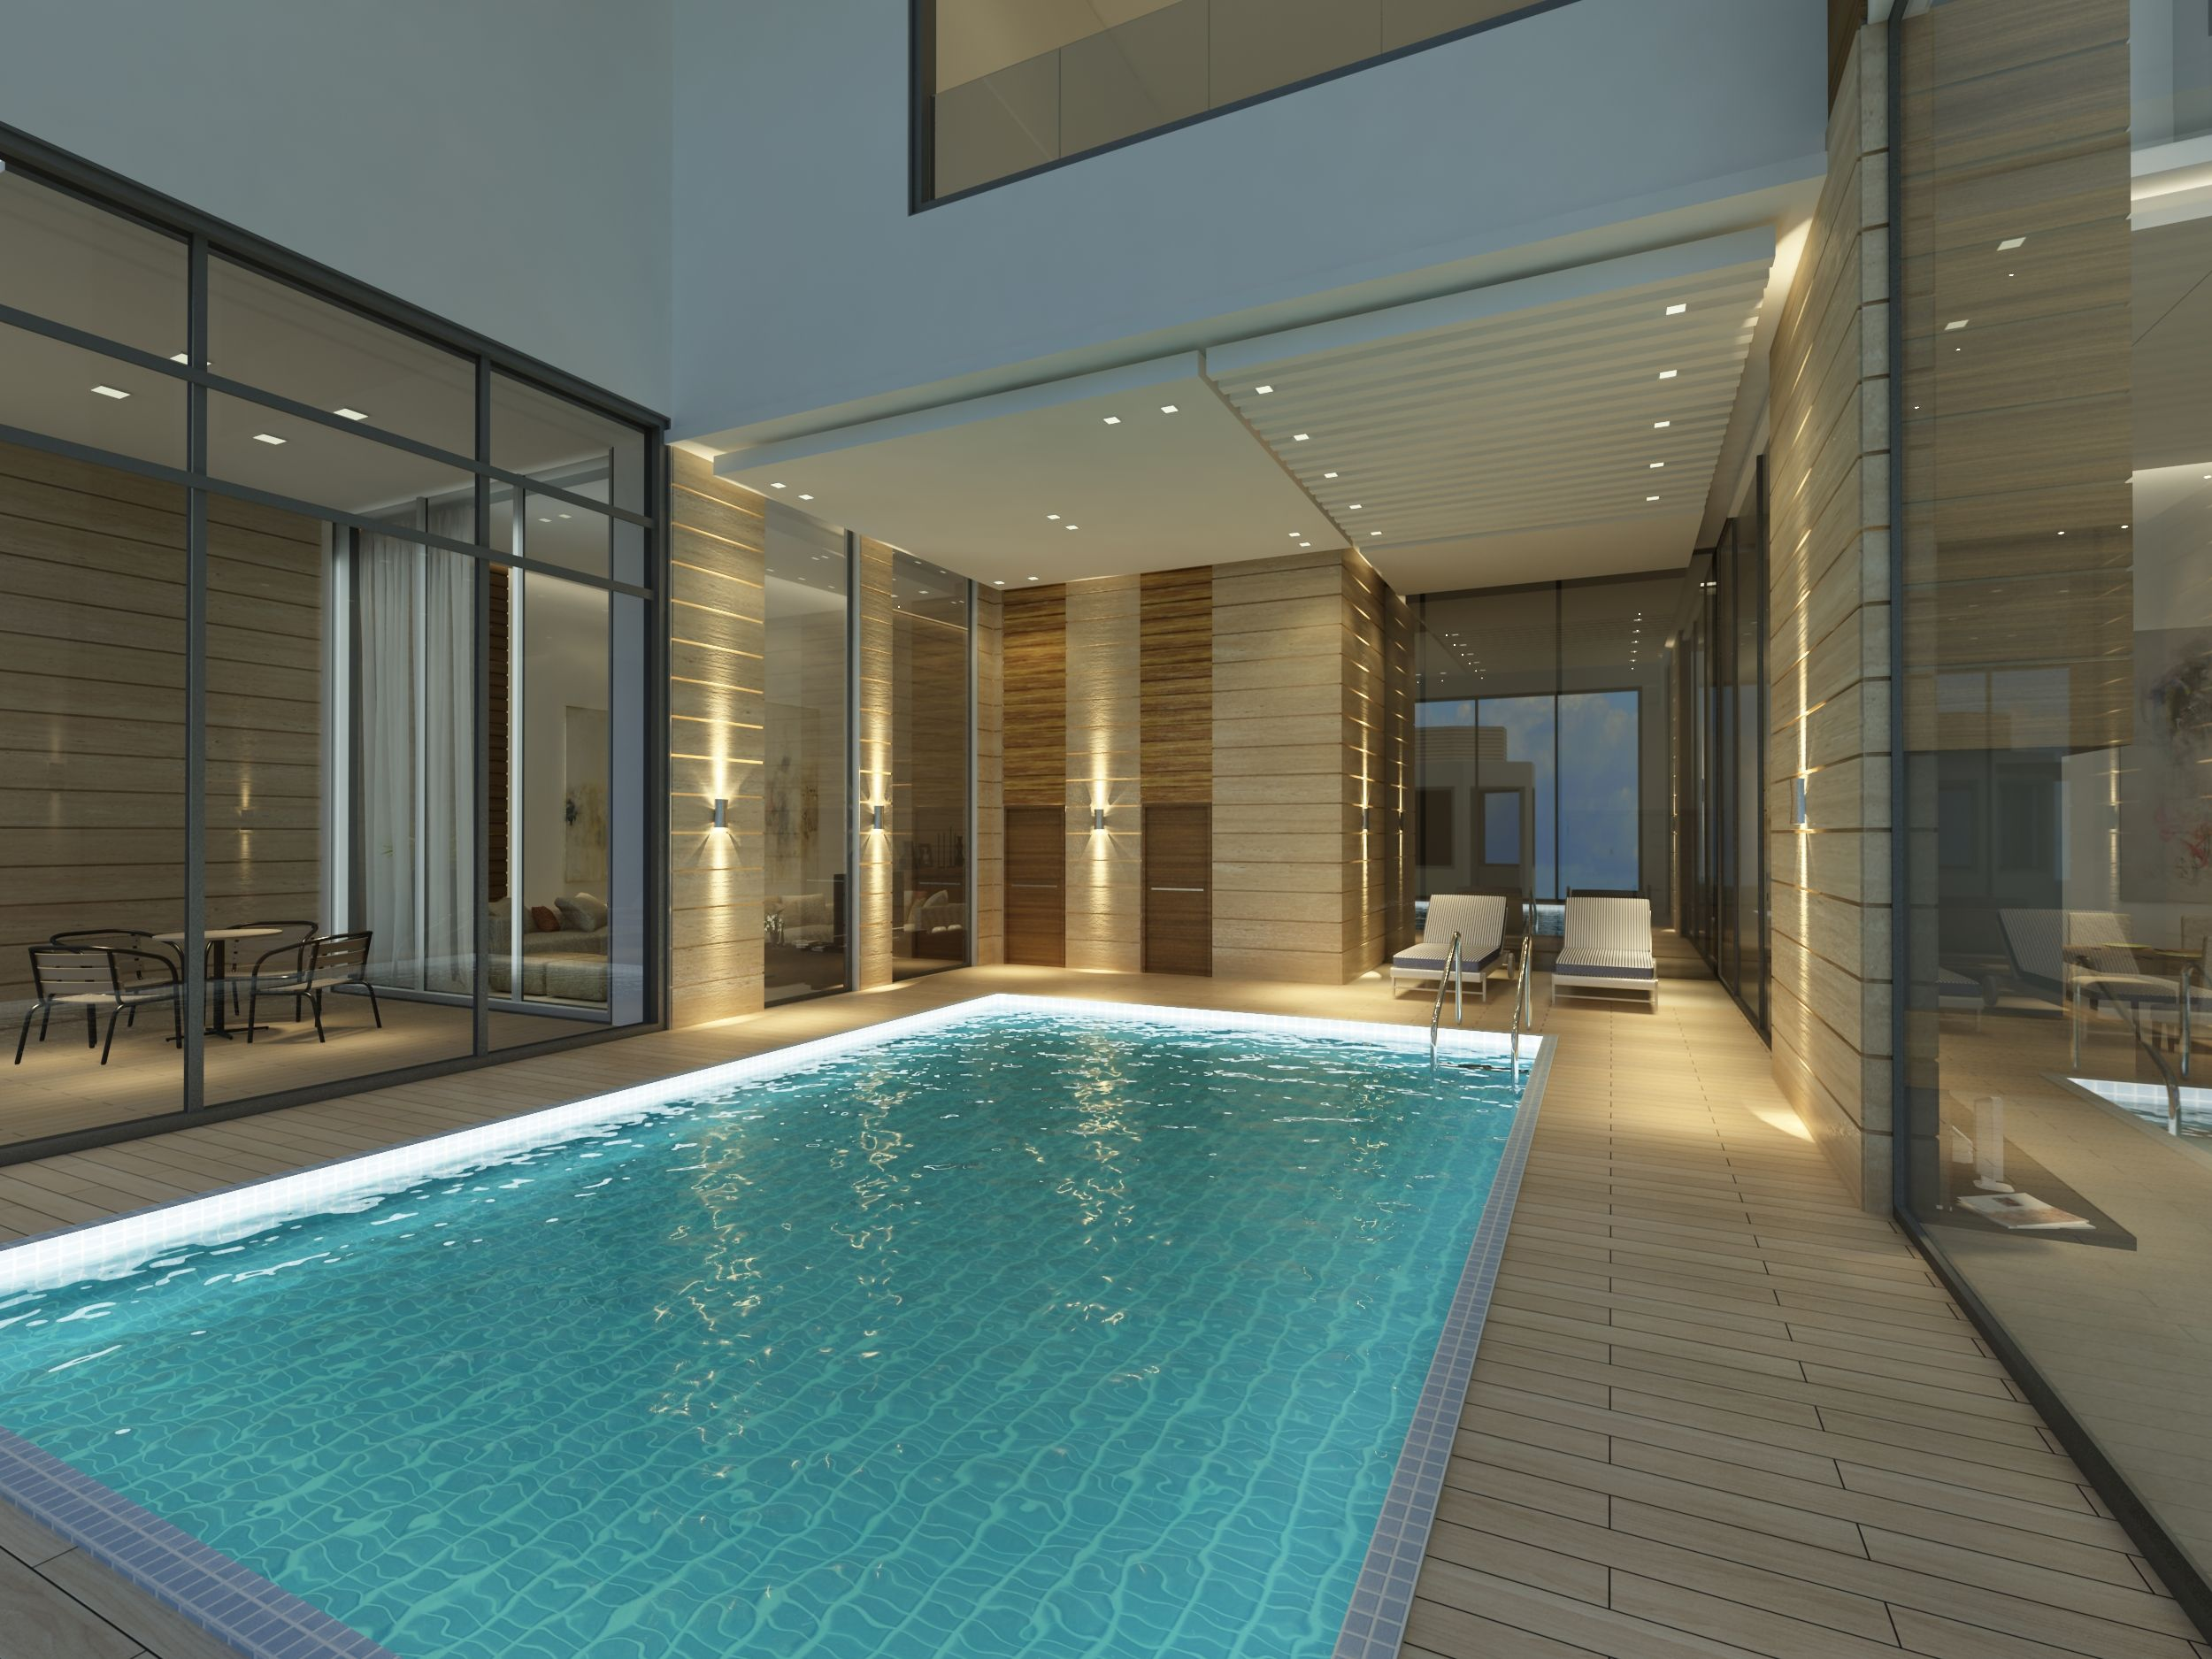 Area M Location Khiran Kuwait Scope Architecture Interior Design Project Info Located In Overlooking The Arabian Gulf Sea Stands A